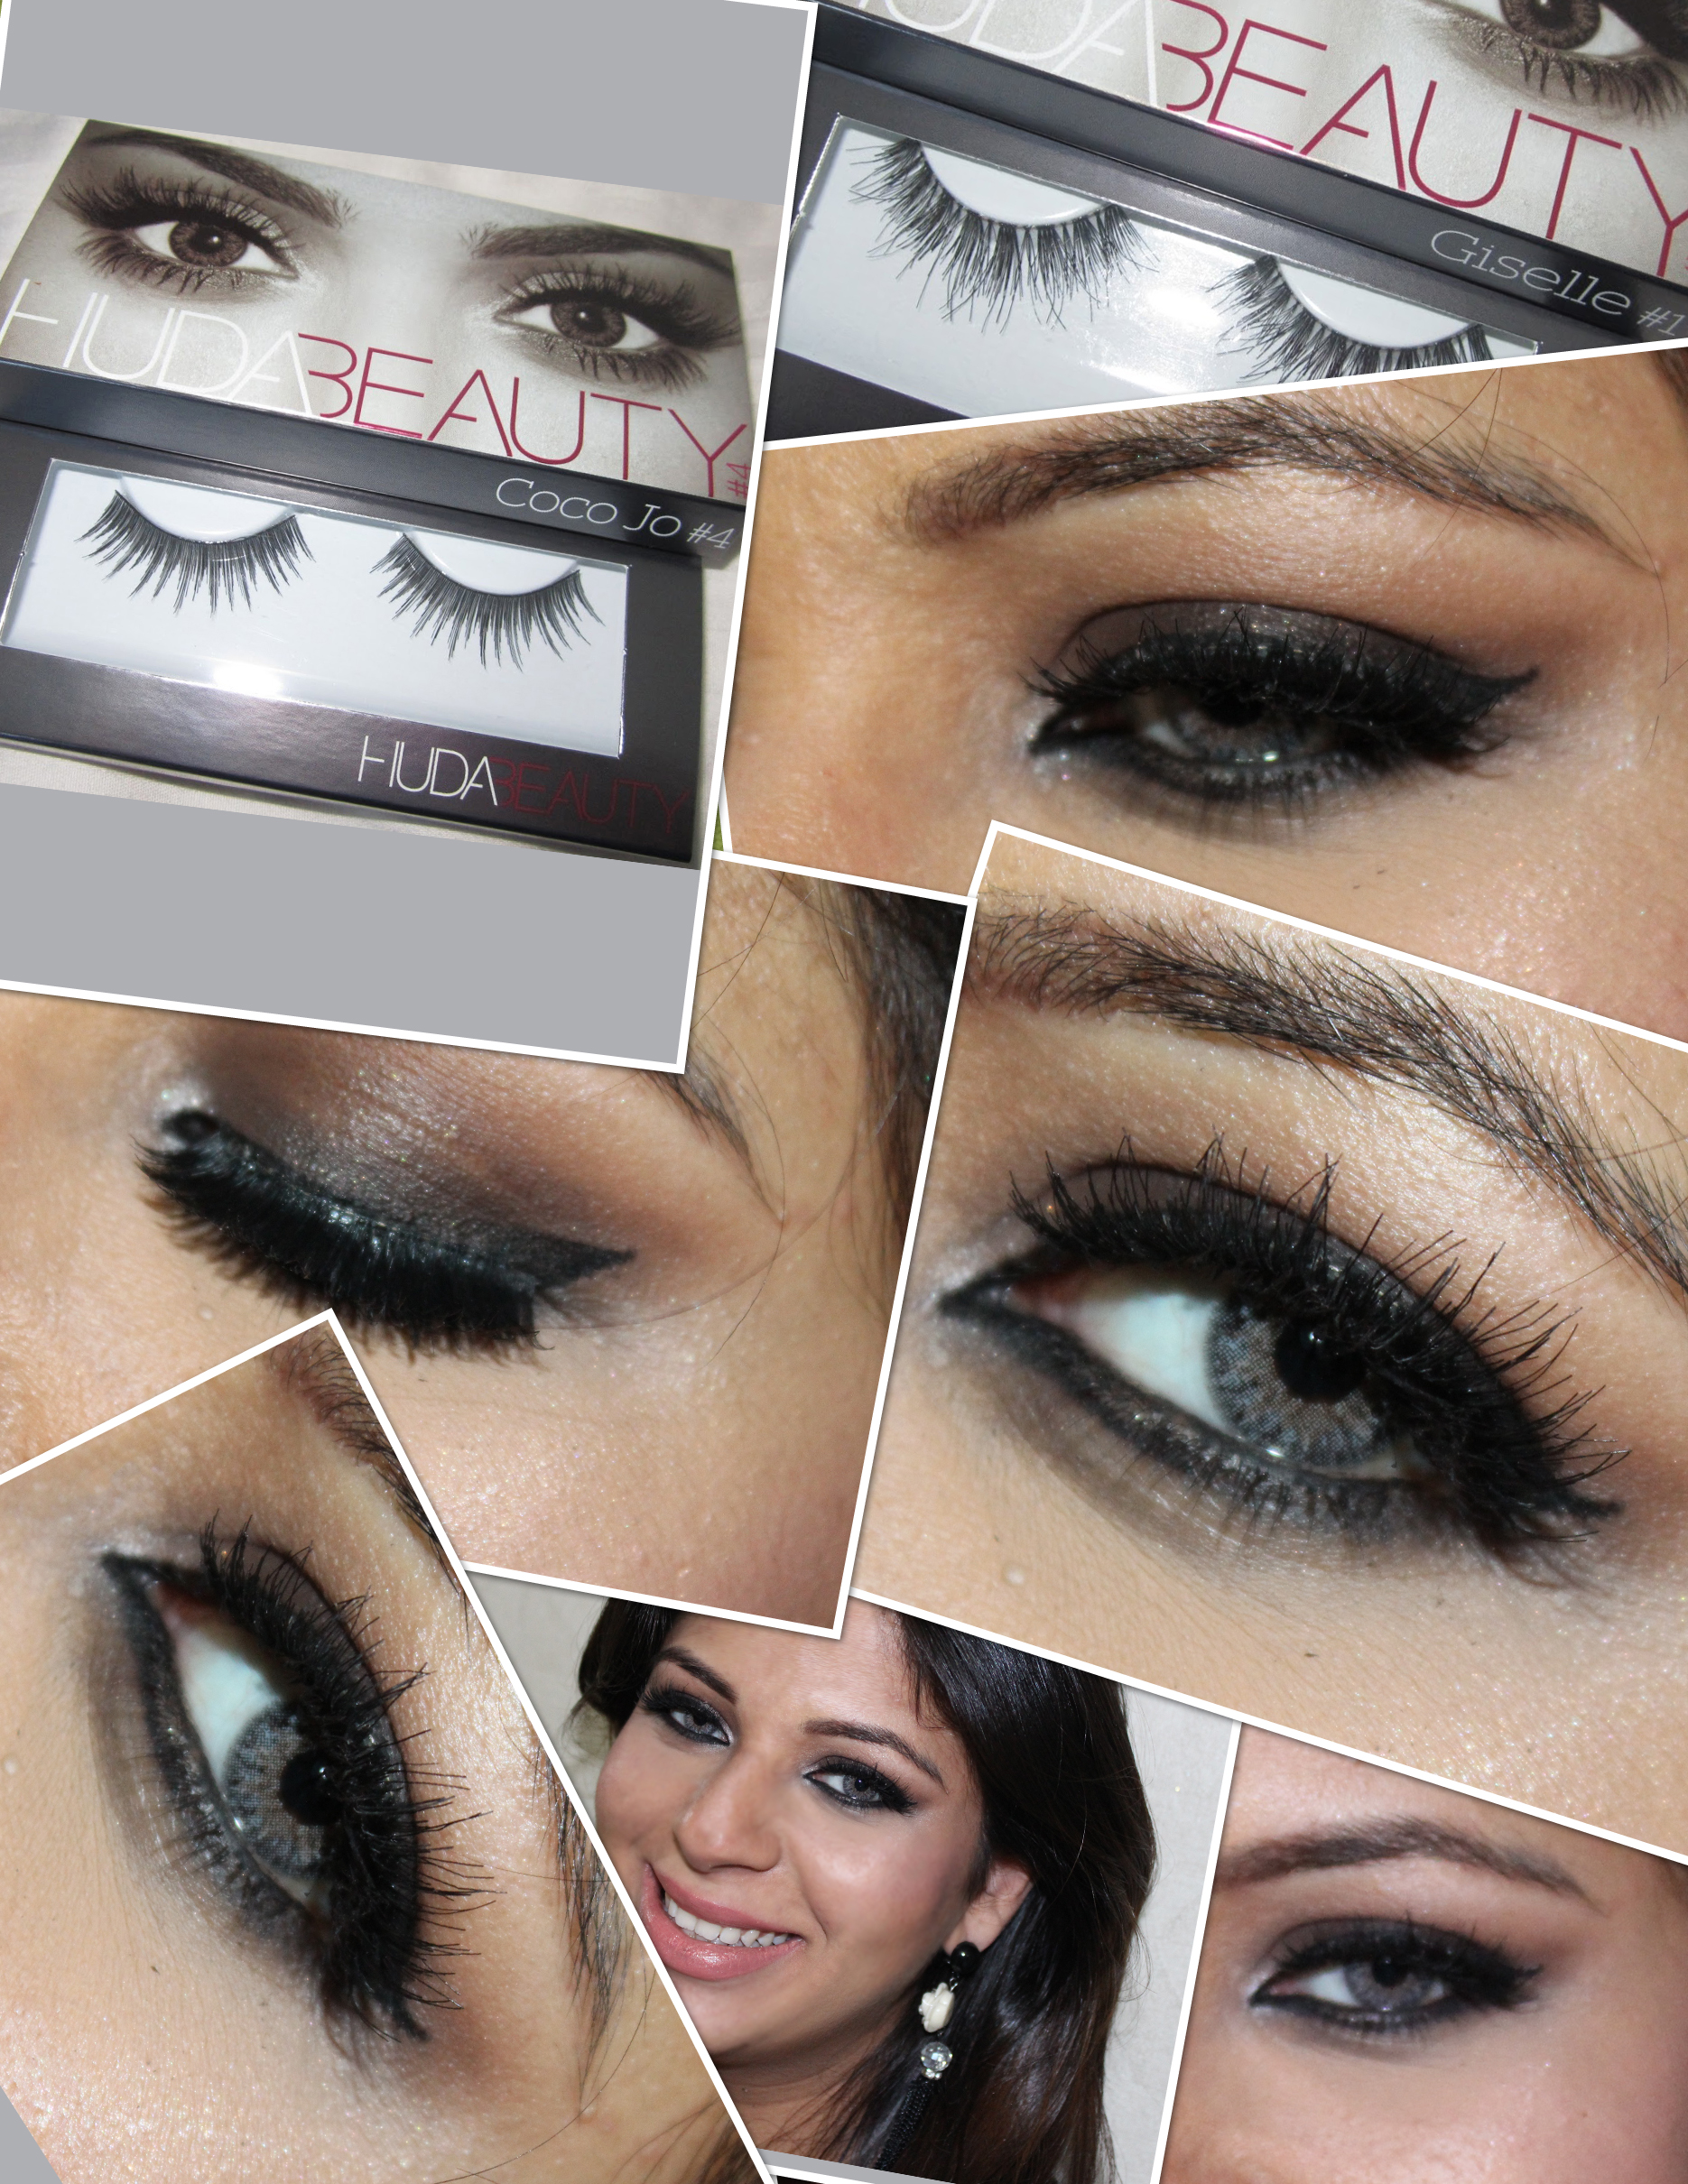 Huda Beauty Lashes in Giselle and Coco Jo